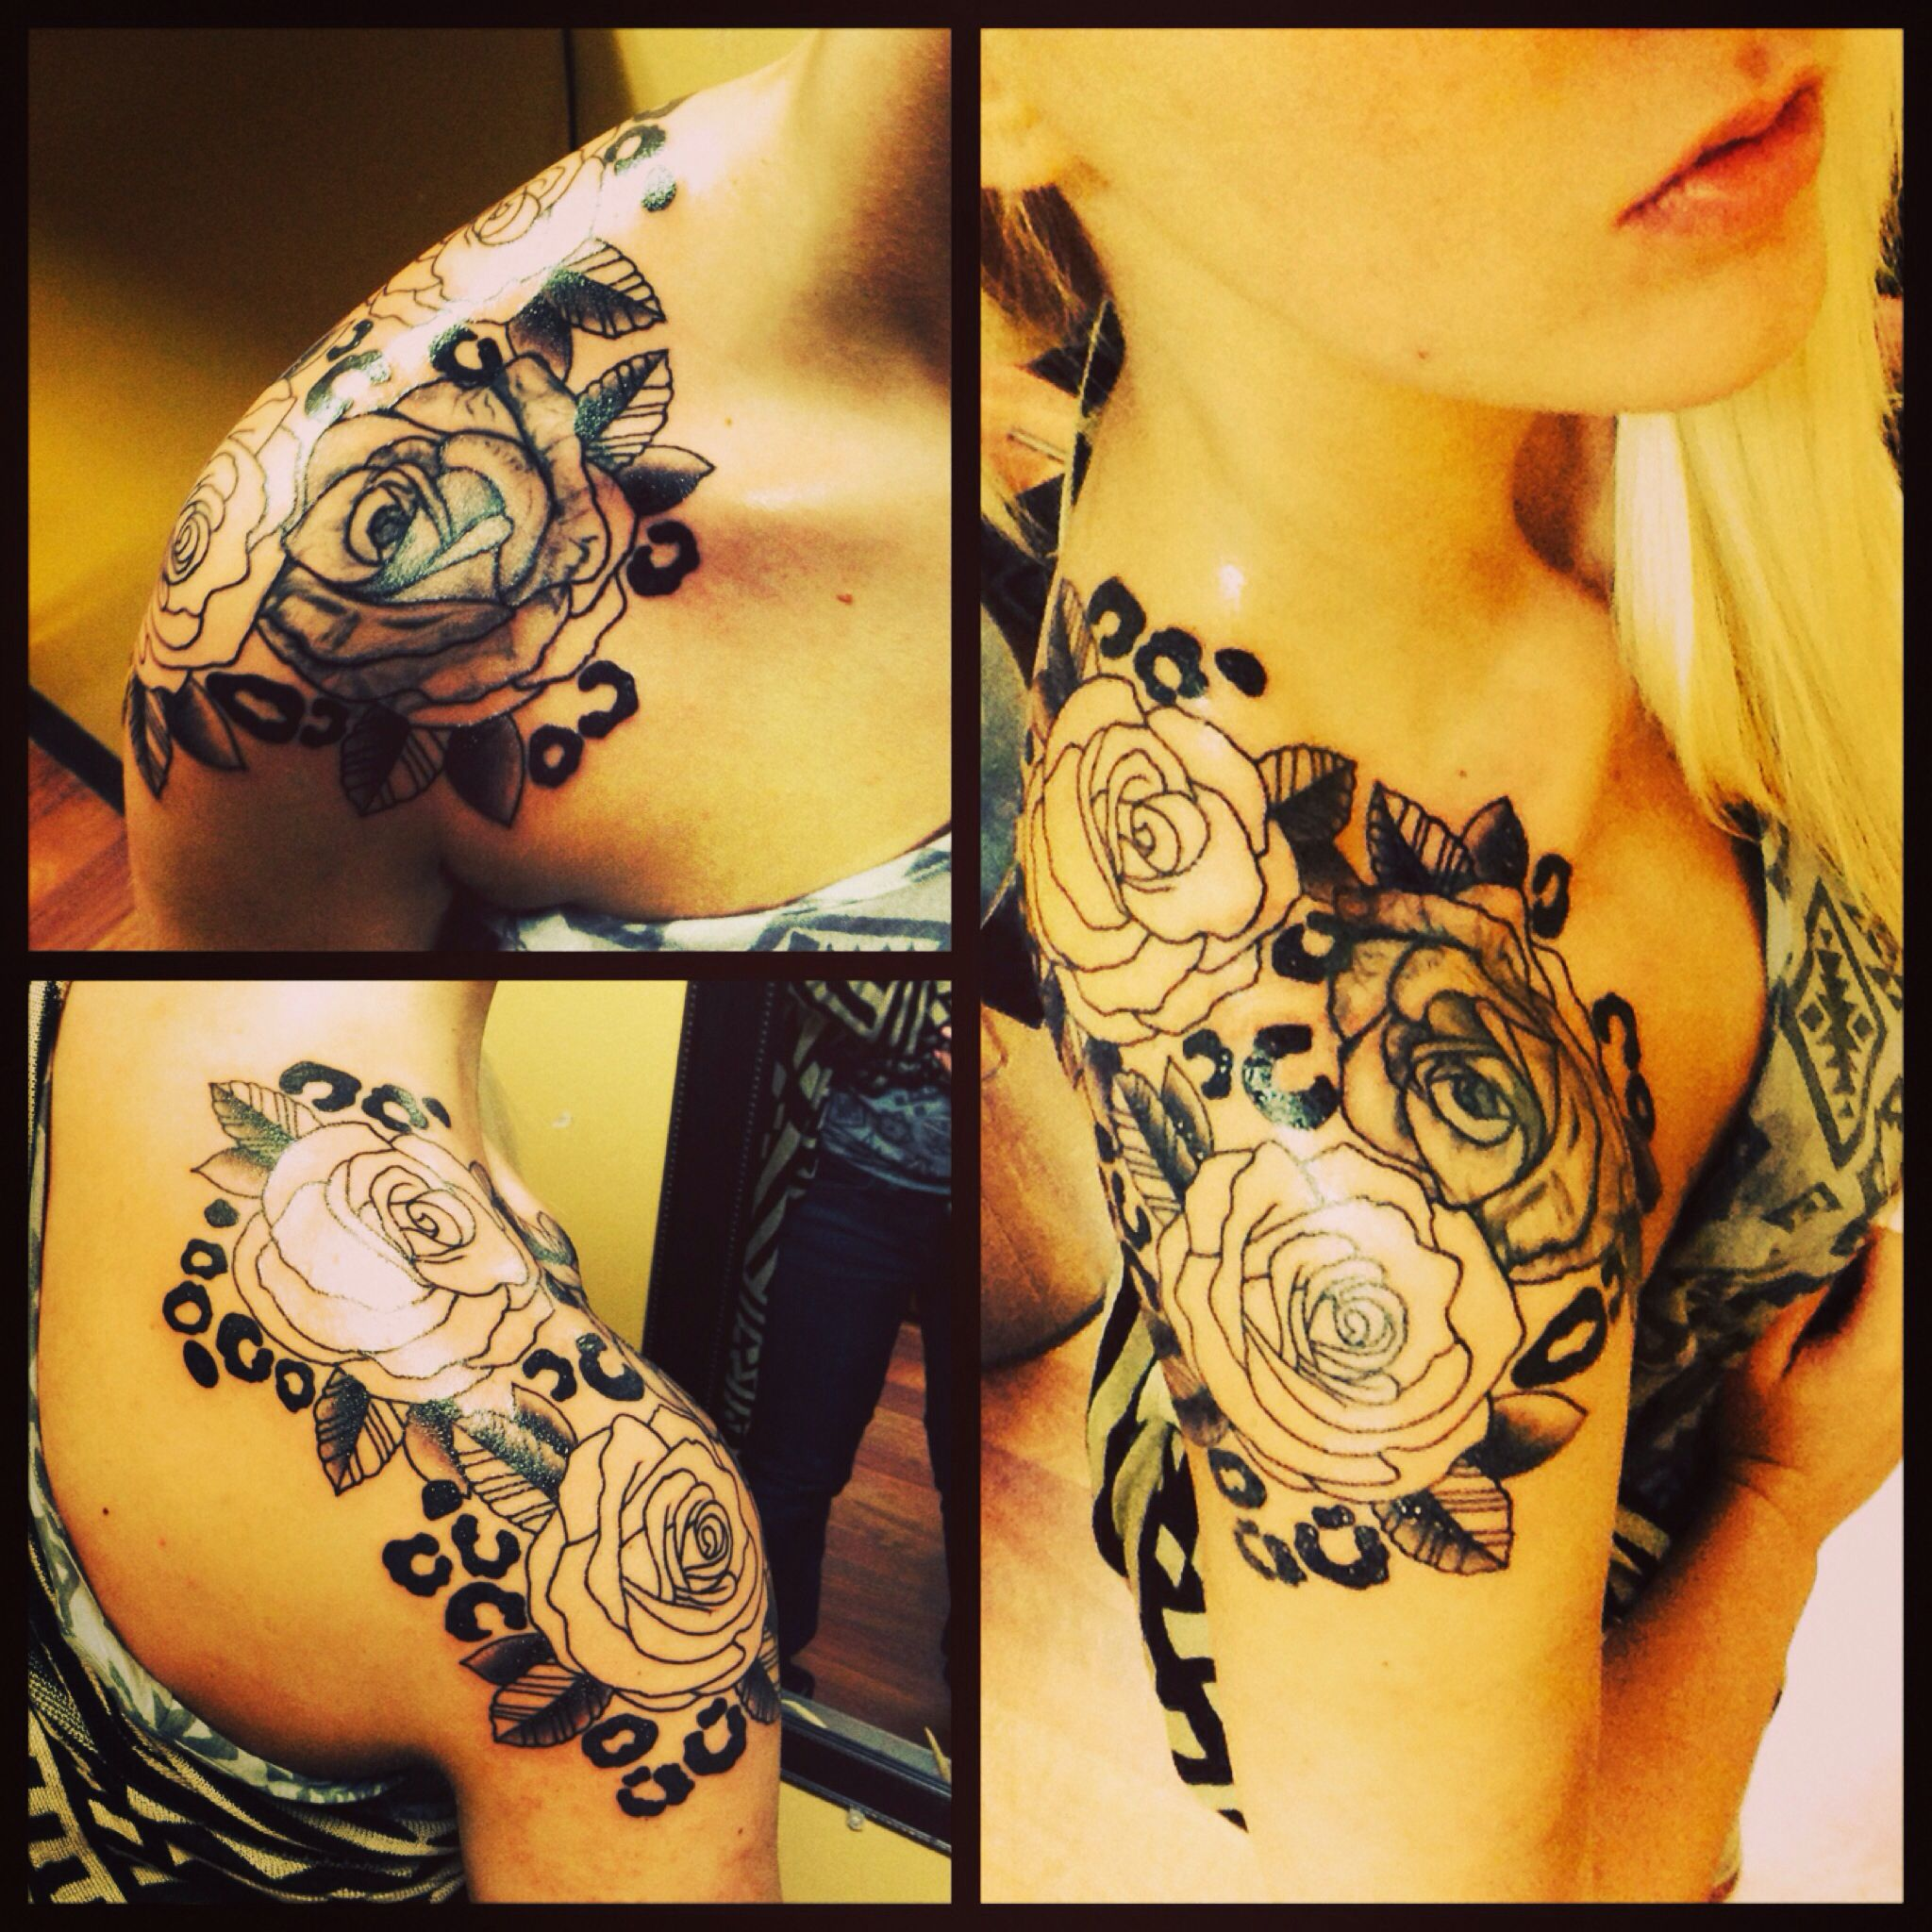 Tattoo Designs To Print: Cheetah Print Tattoo With Rose Flowers